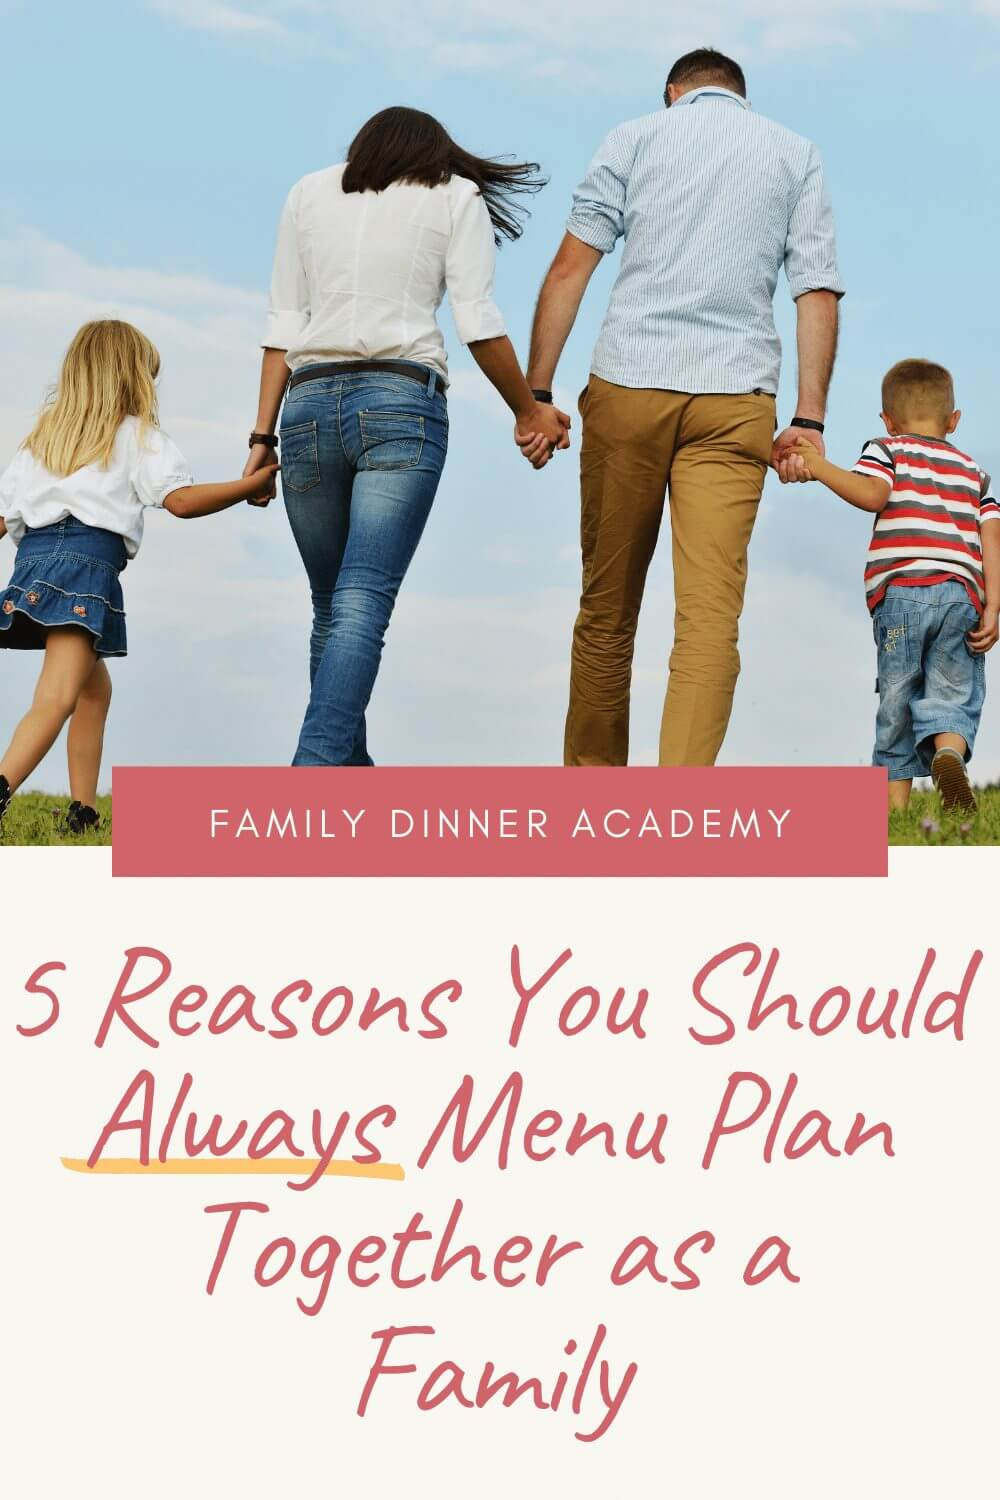 menu planning together as a family